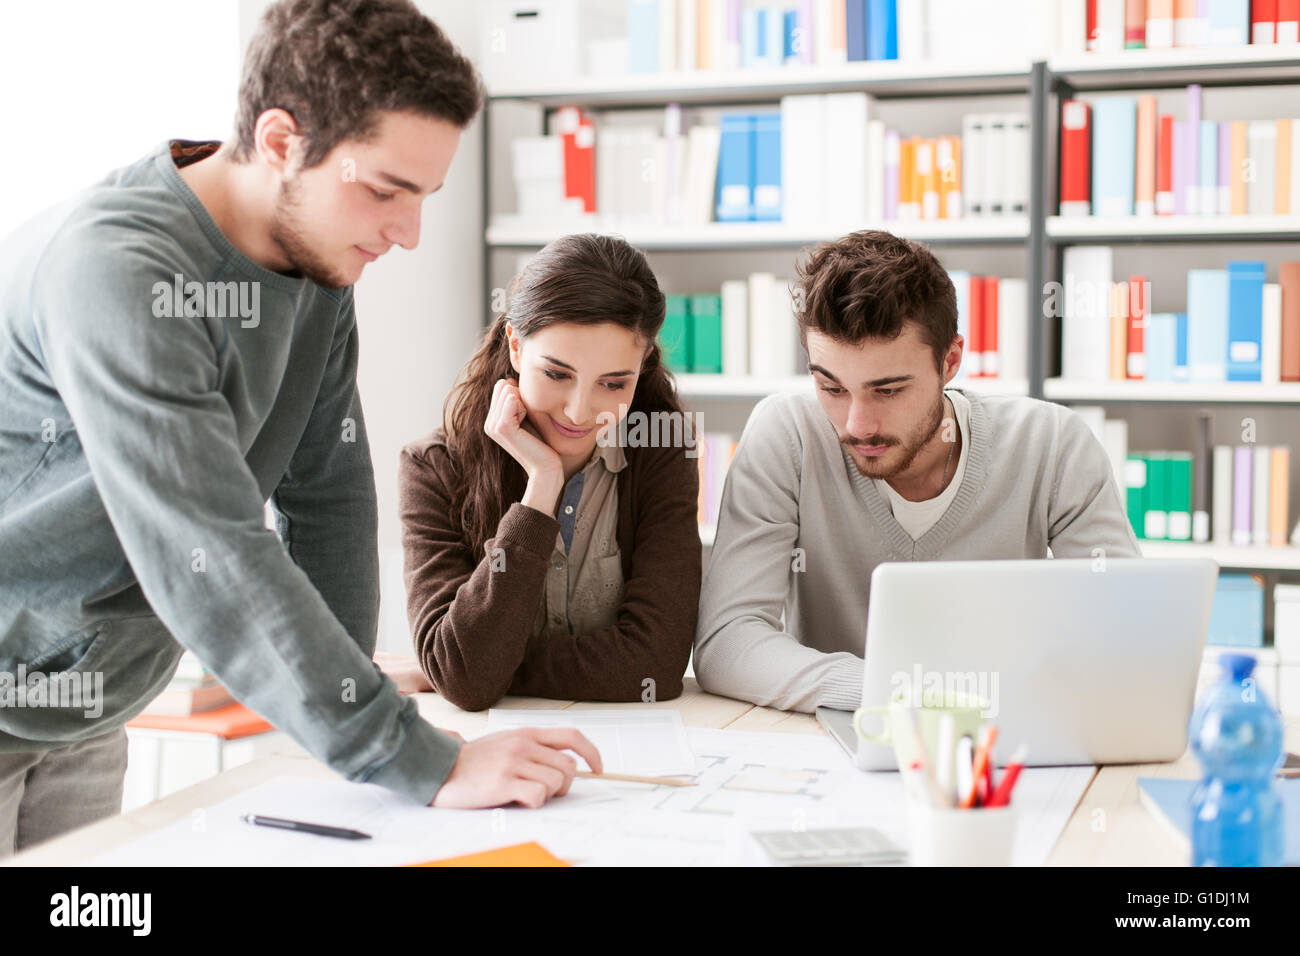 College students working together on a design project, education and learning concept - Stock Image